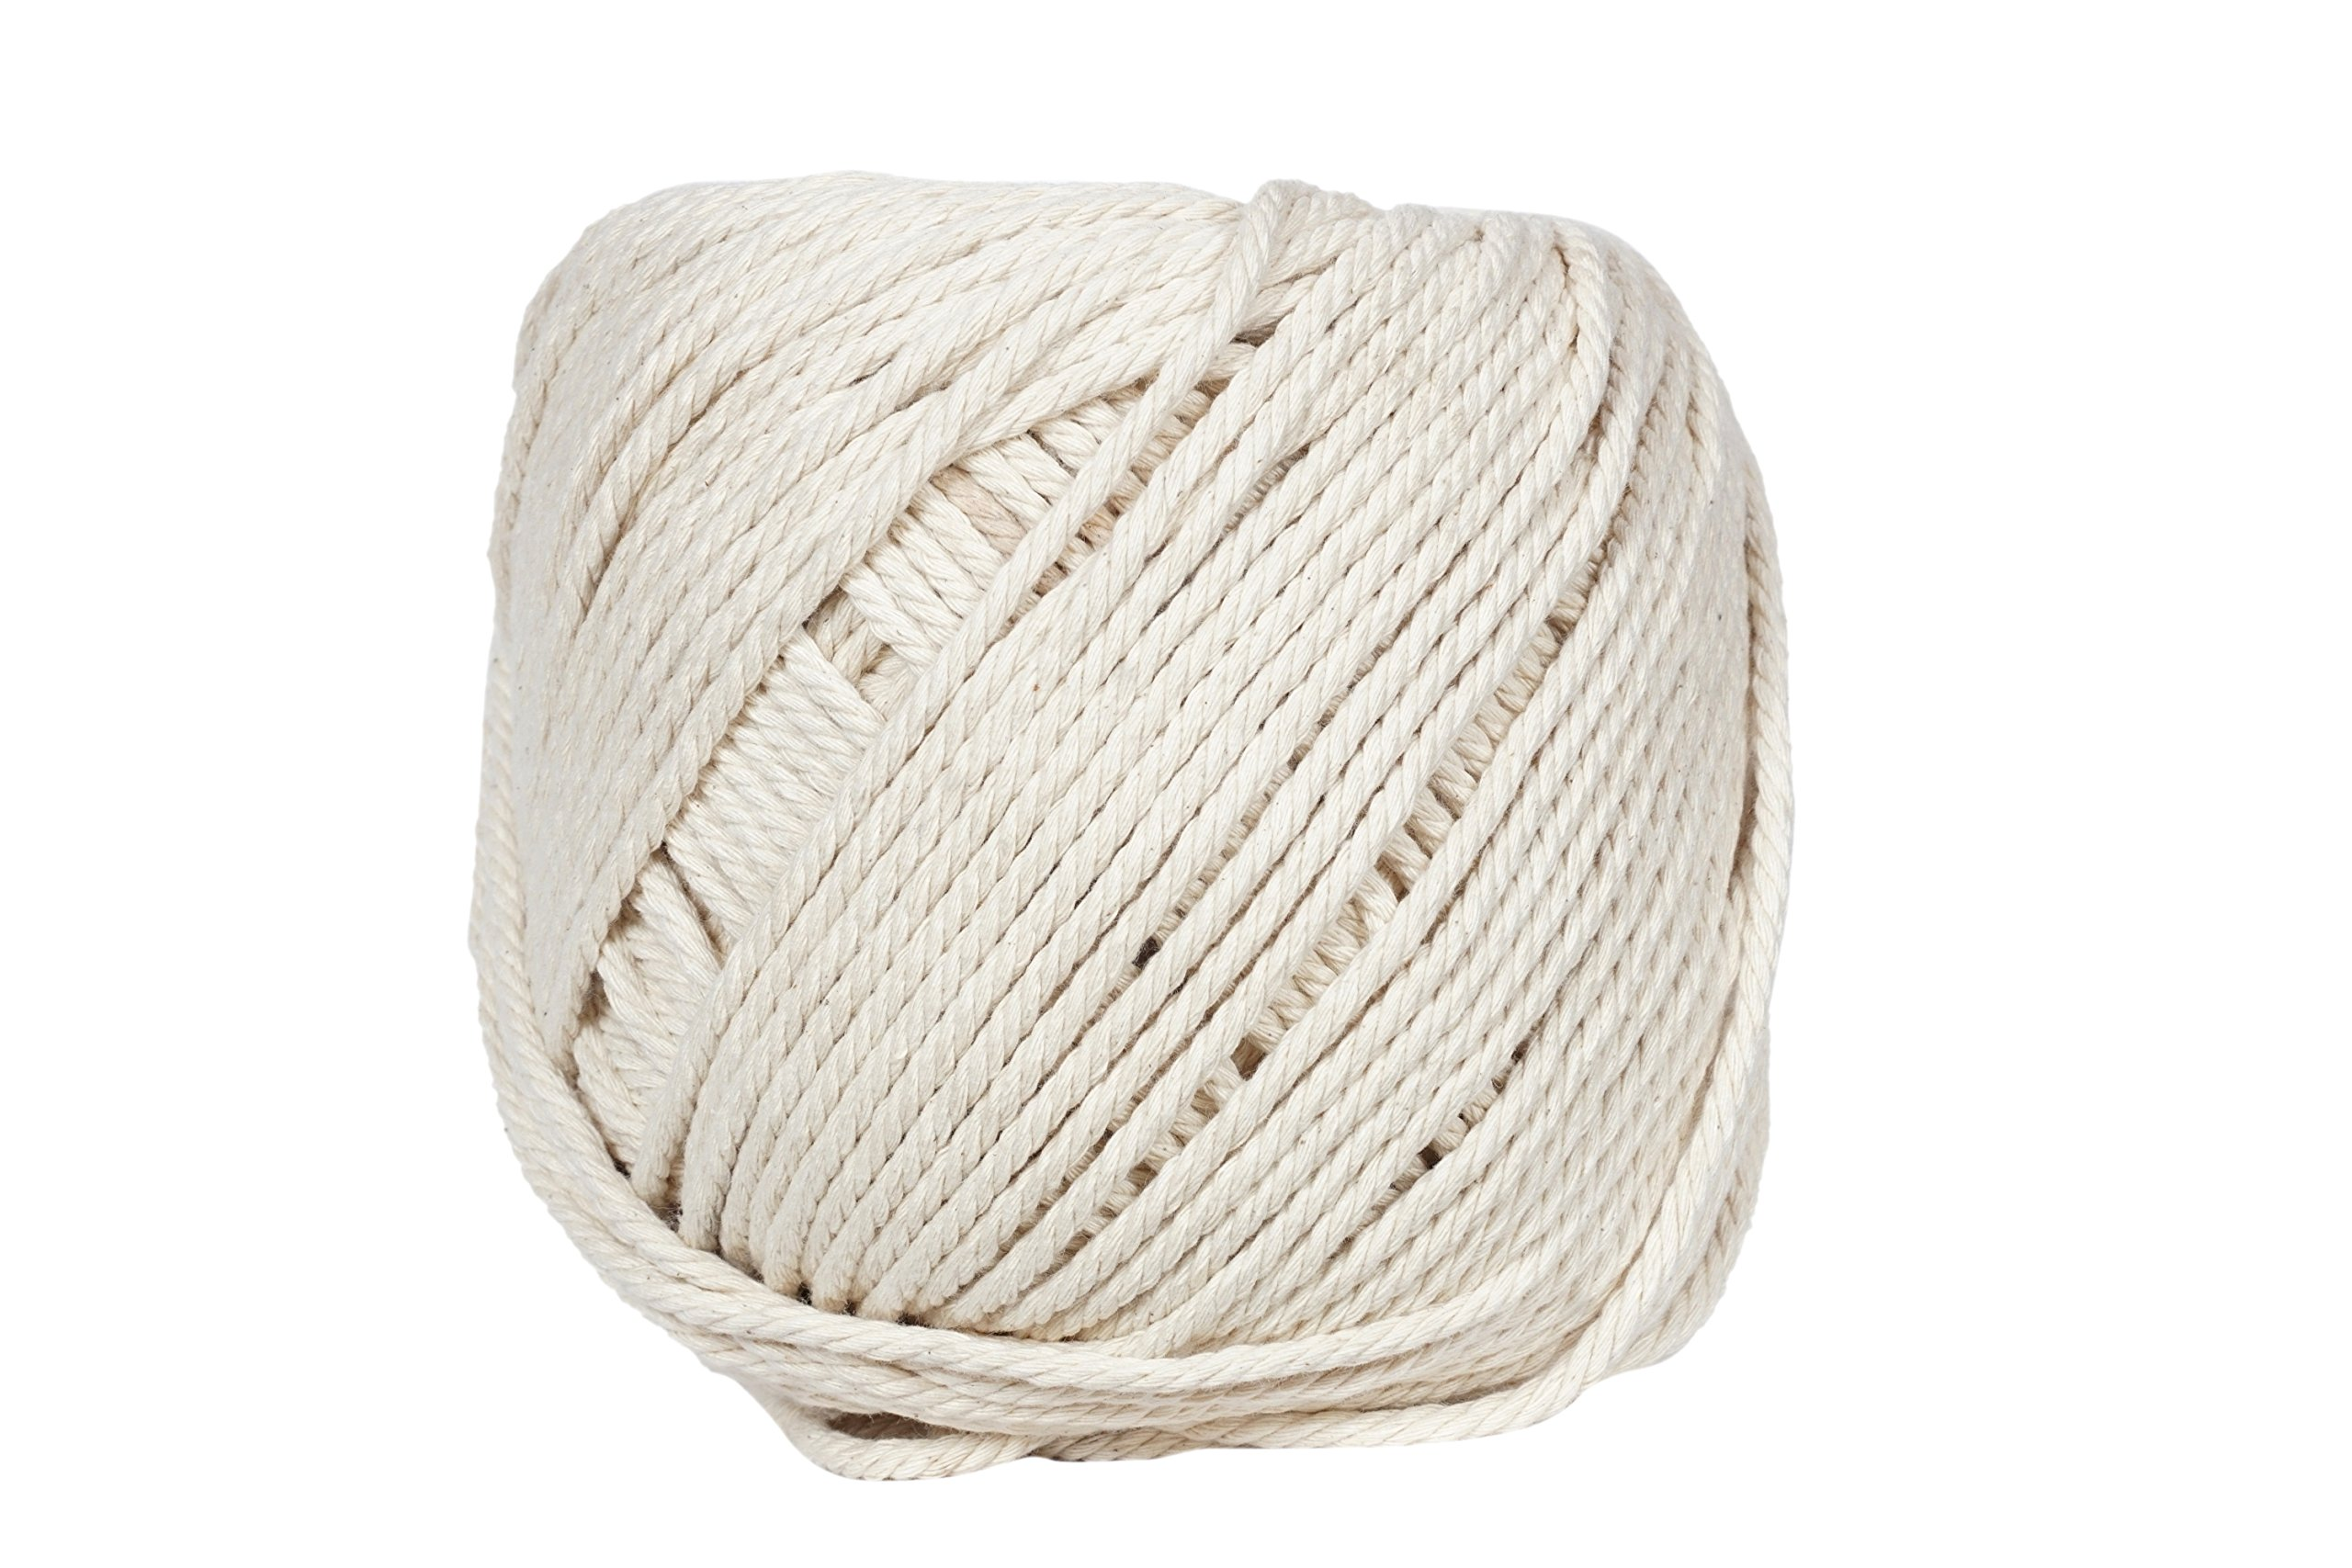 Macrame Cord 4mm X 110m(about 120 yd) Natural Virgin Cotton Handmade Decorations Macrame Wall Hangings Plant Hanger Crocheting Bohemia Dream Catcher DIY Craft Knitting - Soft Undyed Natural Color Rope